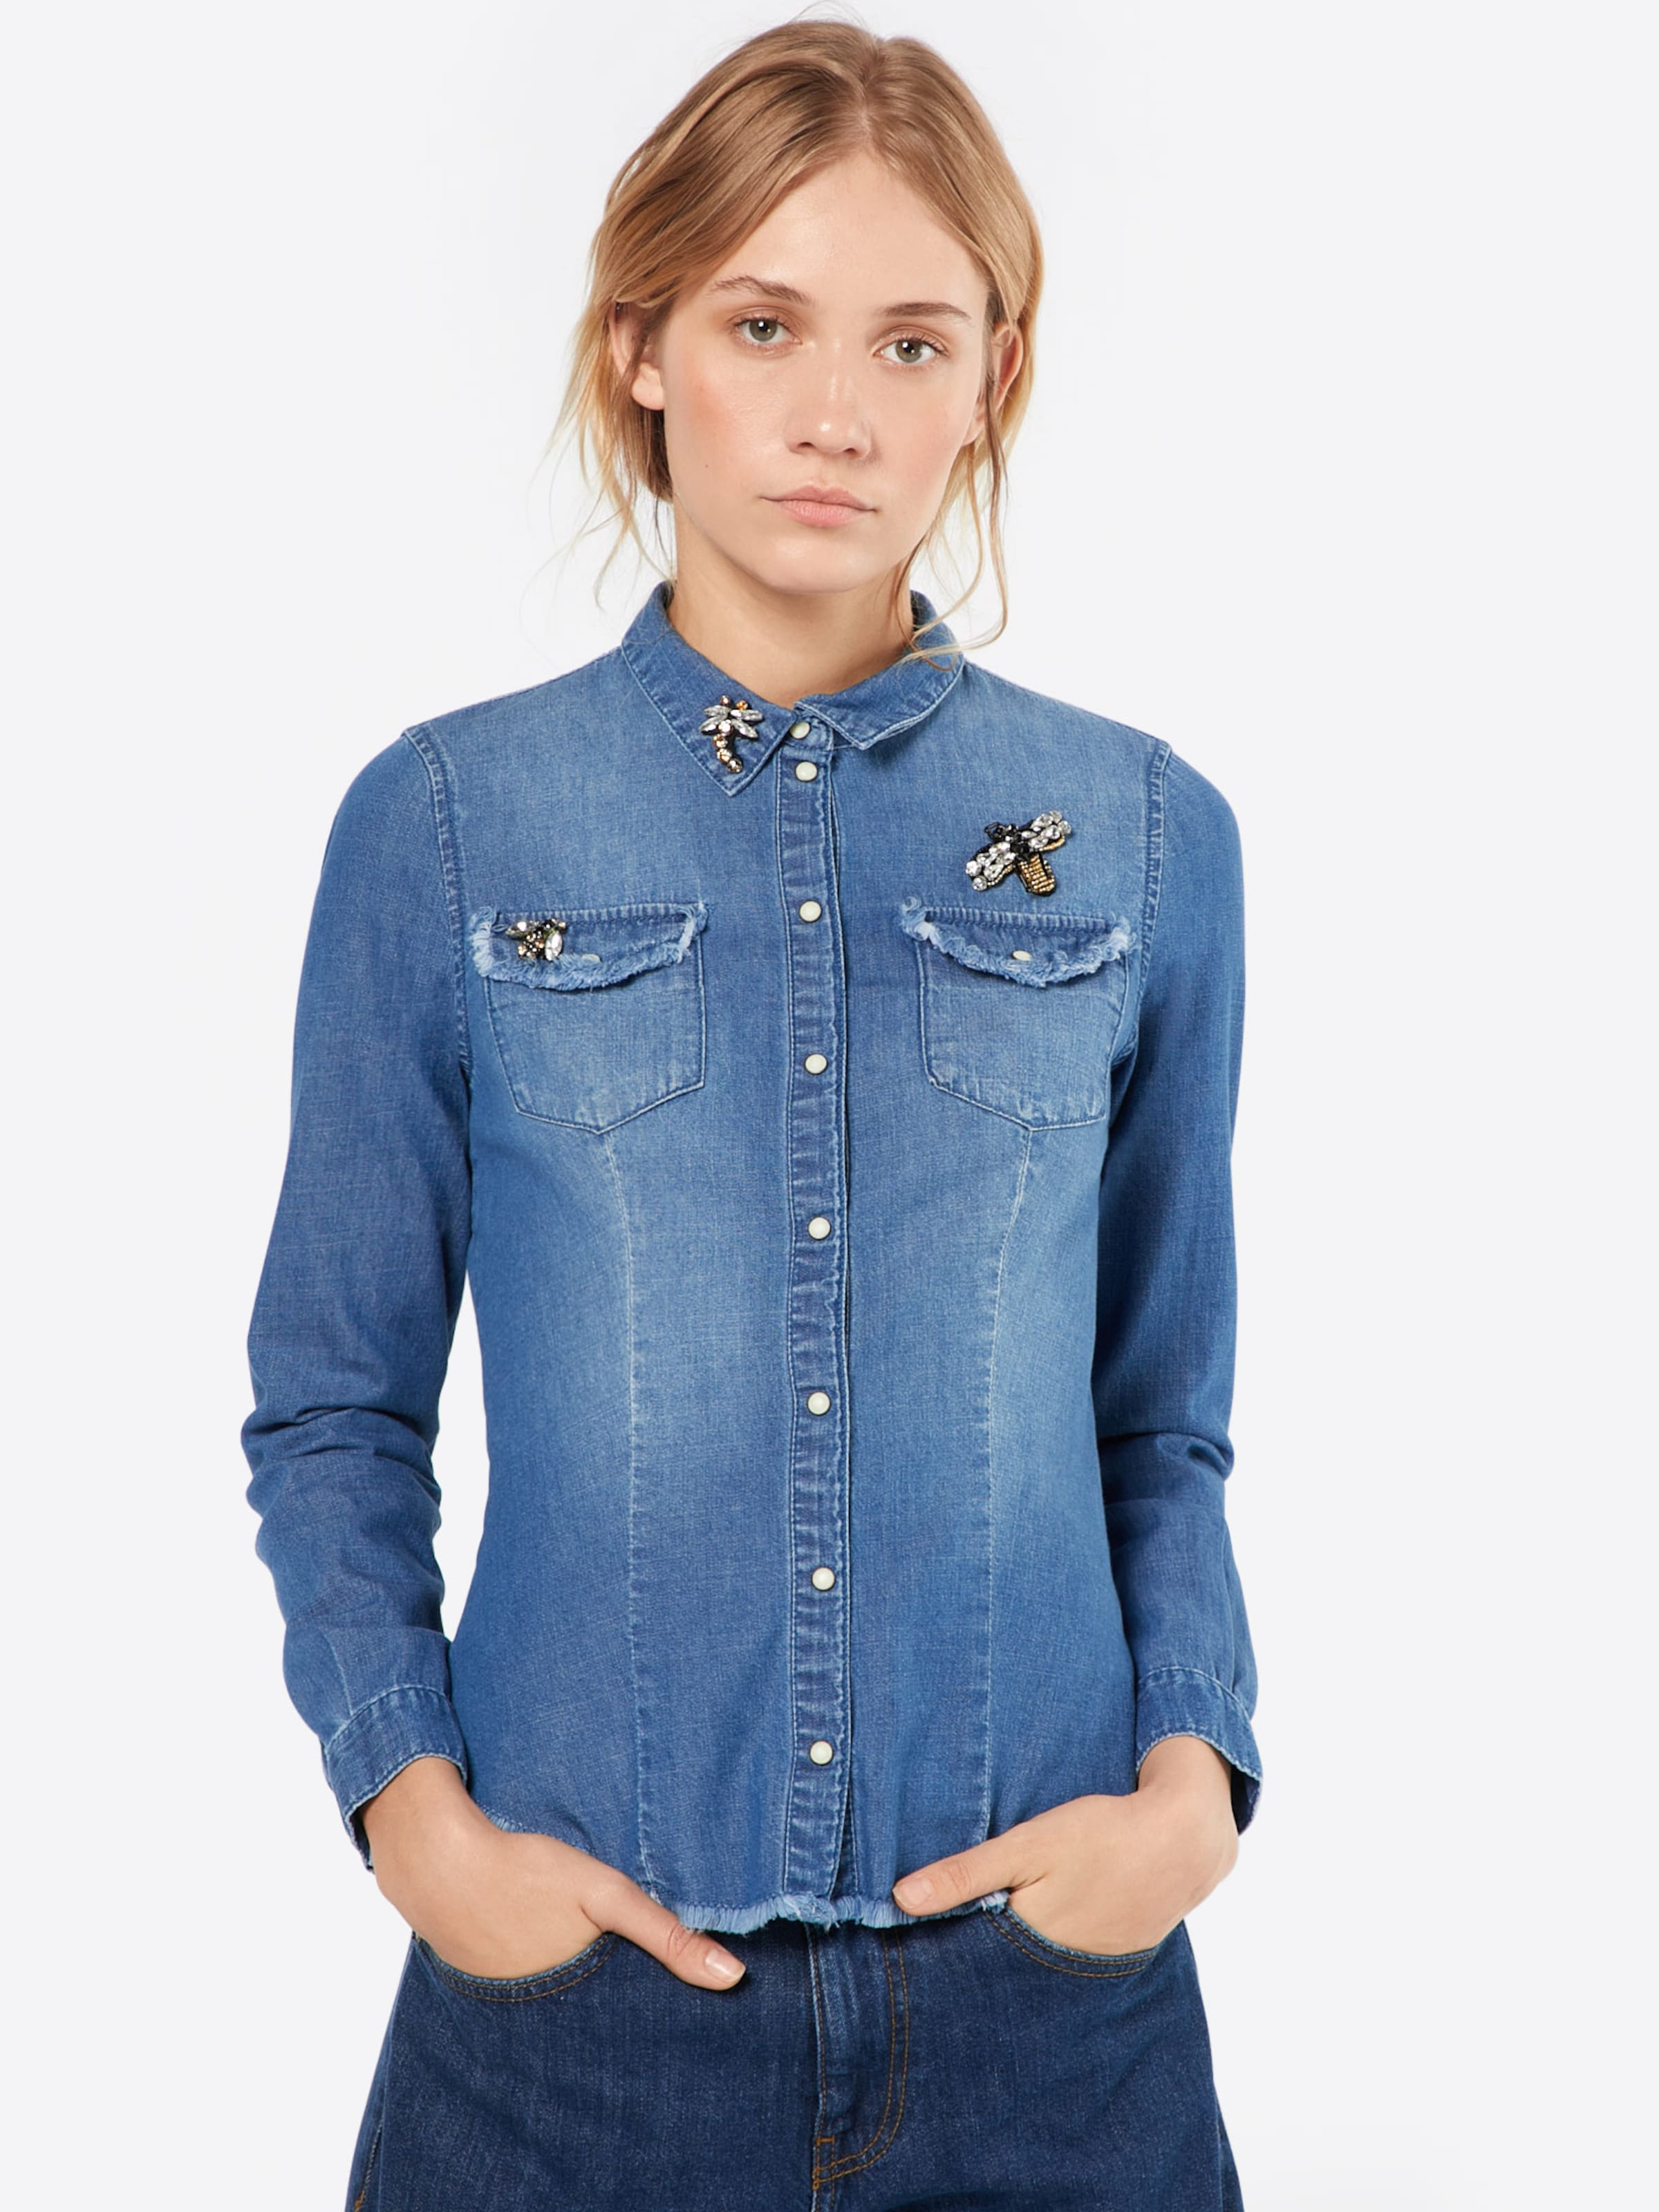 Billig 100% Authentisch ONLY Jeans Bluse 'onlROCK IT FIT' Bilder Billig Verkauf Ebay Billig Verkaufen Brandneue Unisex fzSsq